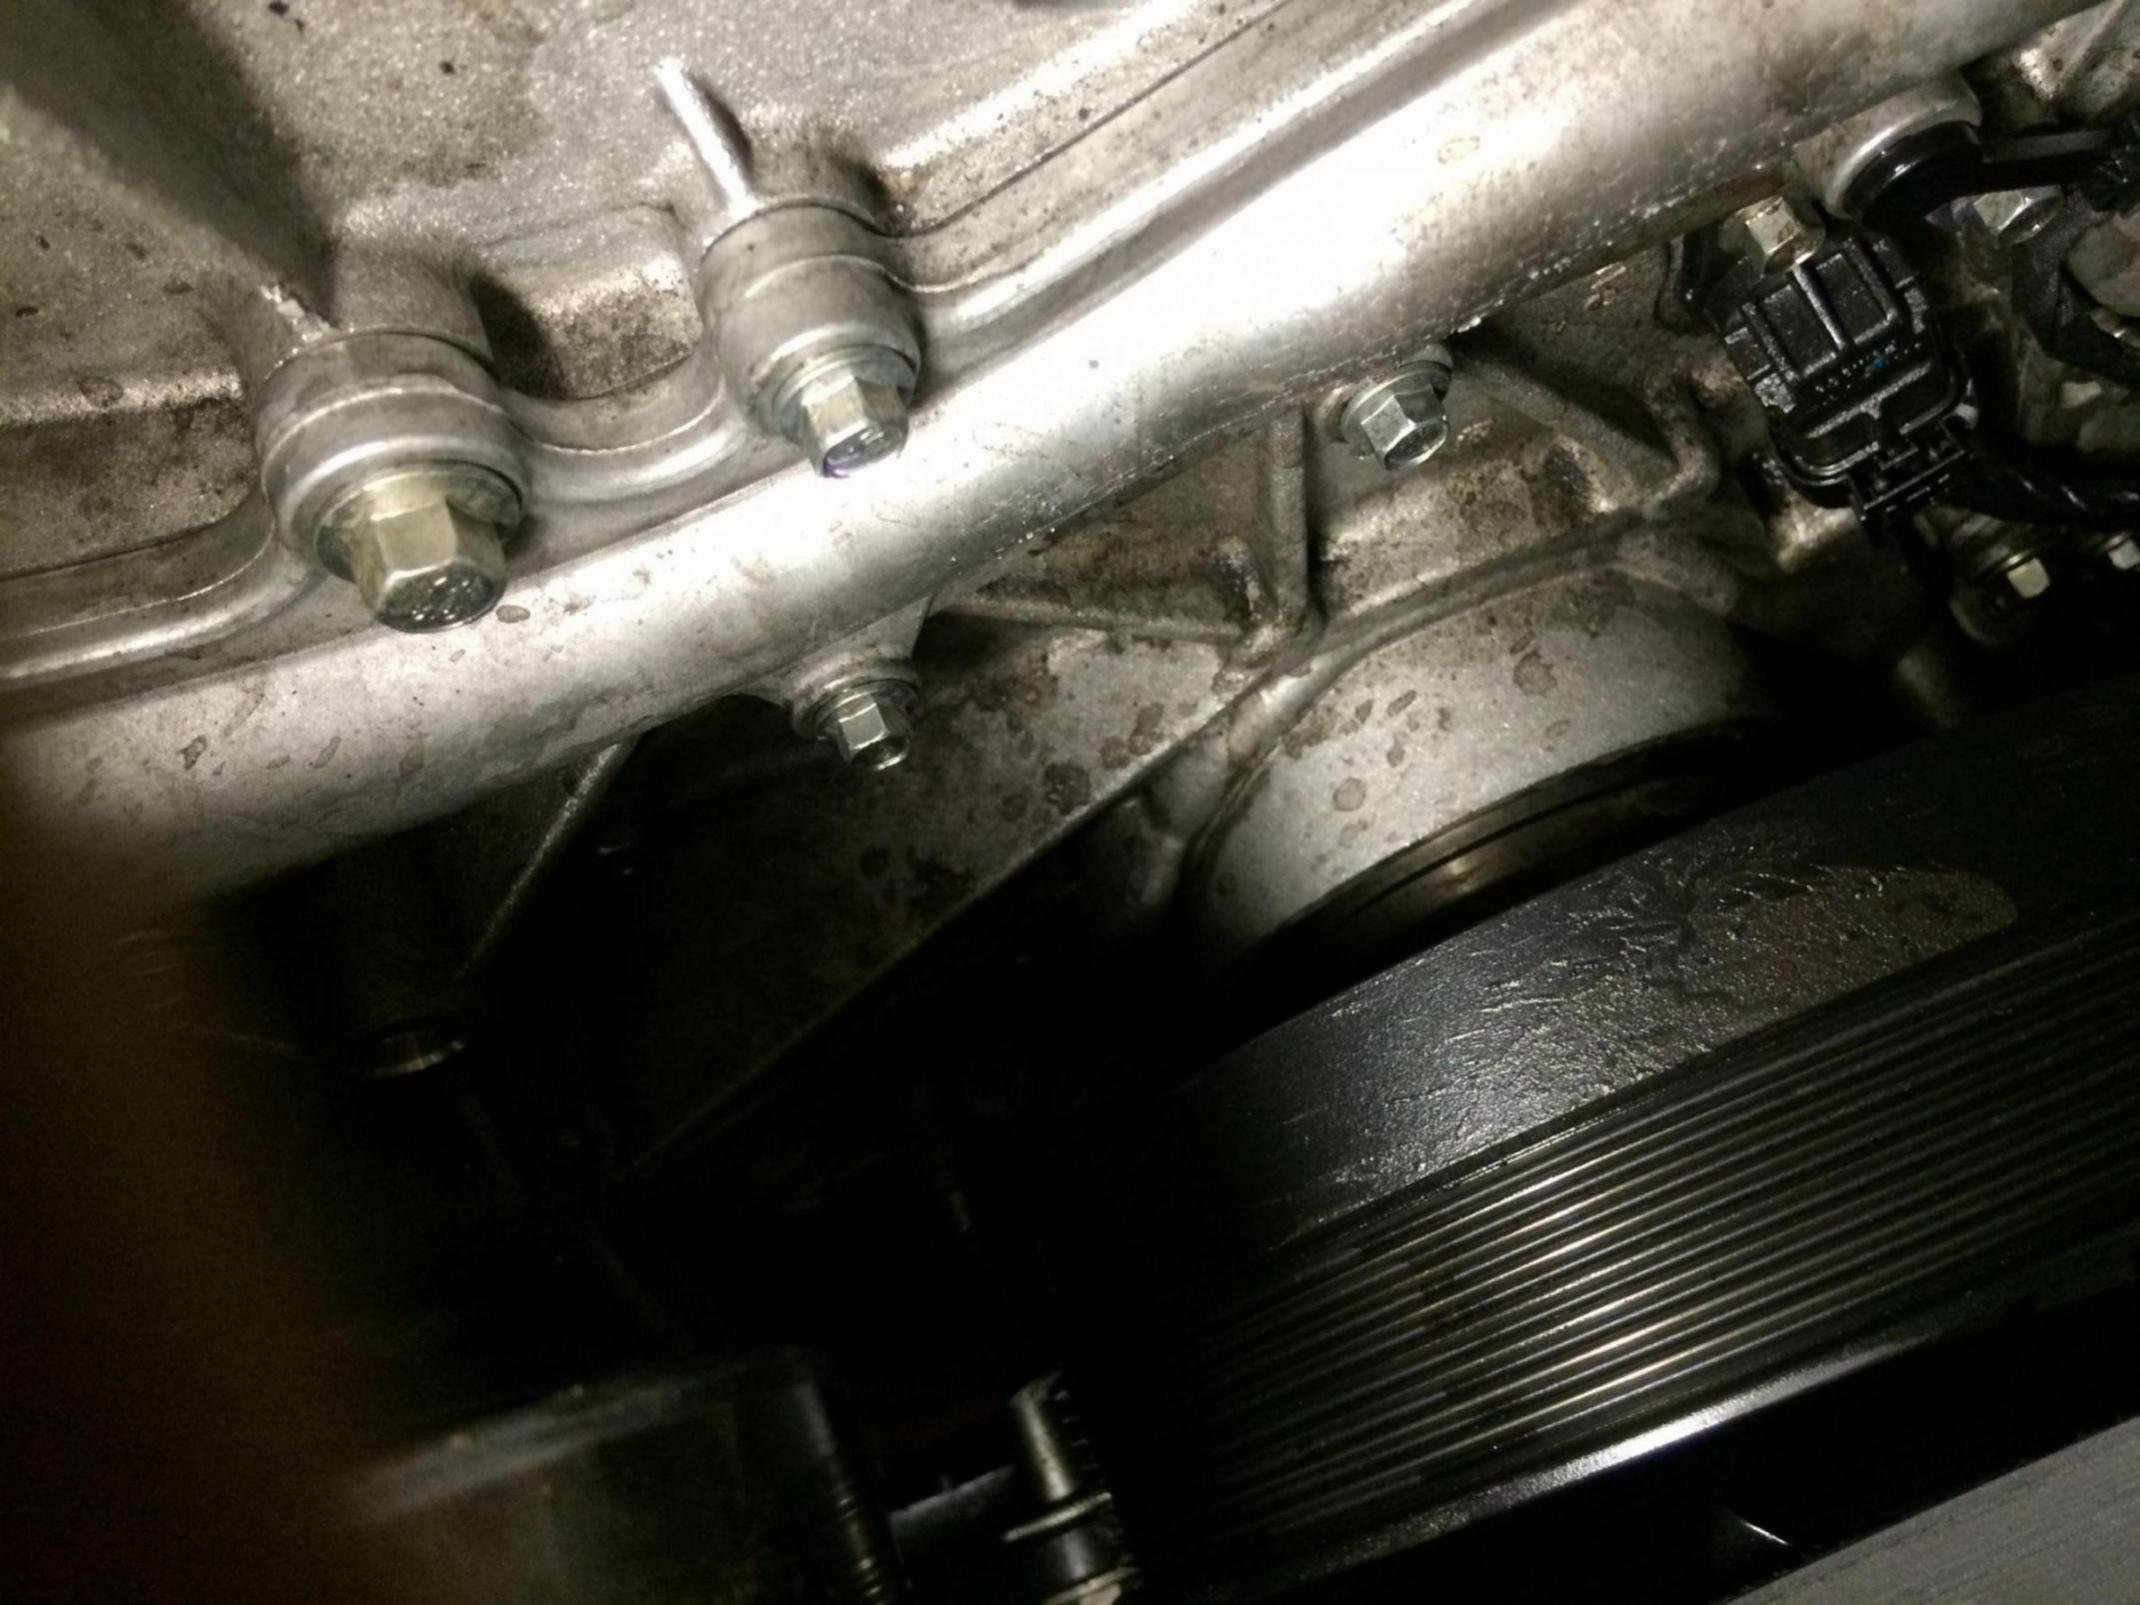 6.7 Powerstroke Problems >> Broken Crankshaft - Ford Powerstroke Diesel Forum